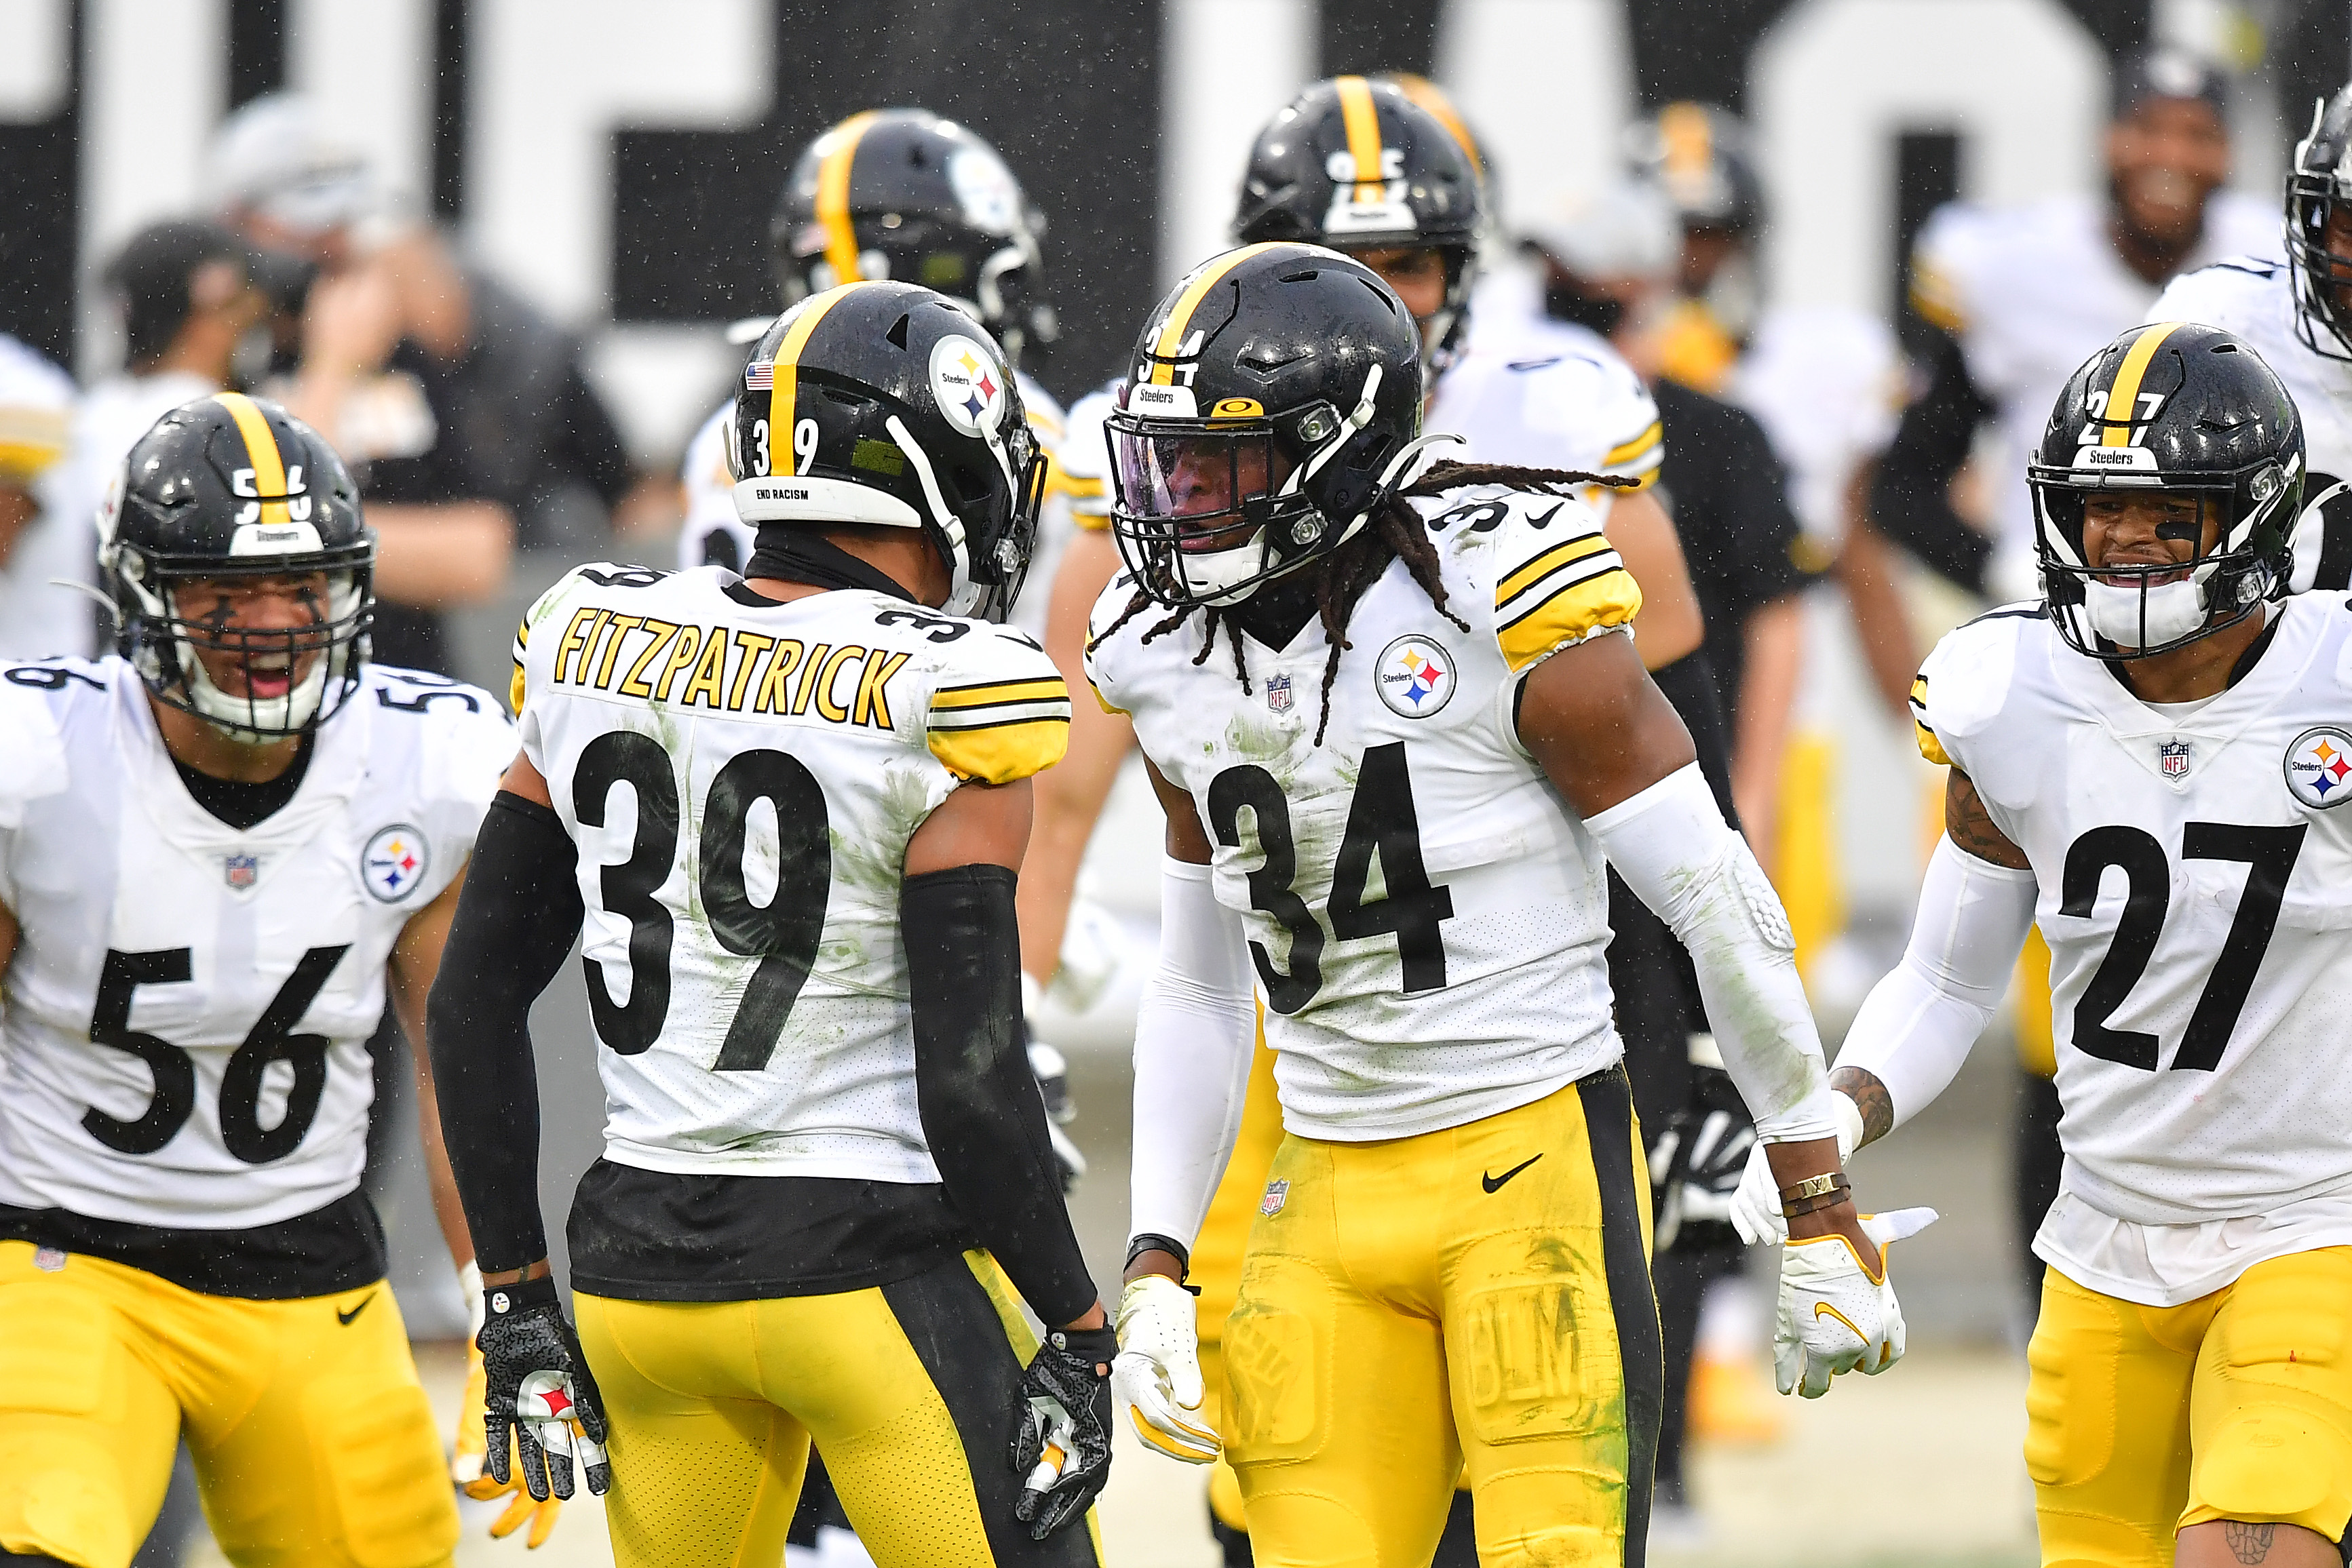 Minkah Fitzpatrick #39 celebratews with Terrell Edmunds #34 of the Pittsburgh Steelers after Edmunds' interception during the second half against the Jacksonville Jaguars at TIAA Bank Field on November 22, 2020 in Jacksonville, Florida.